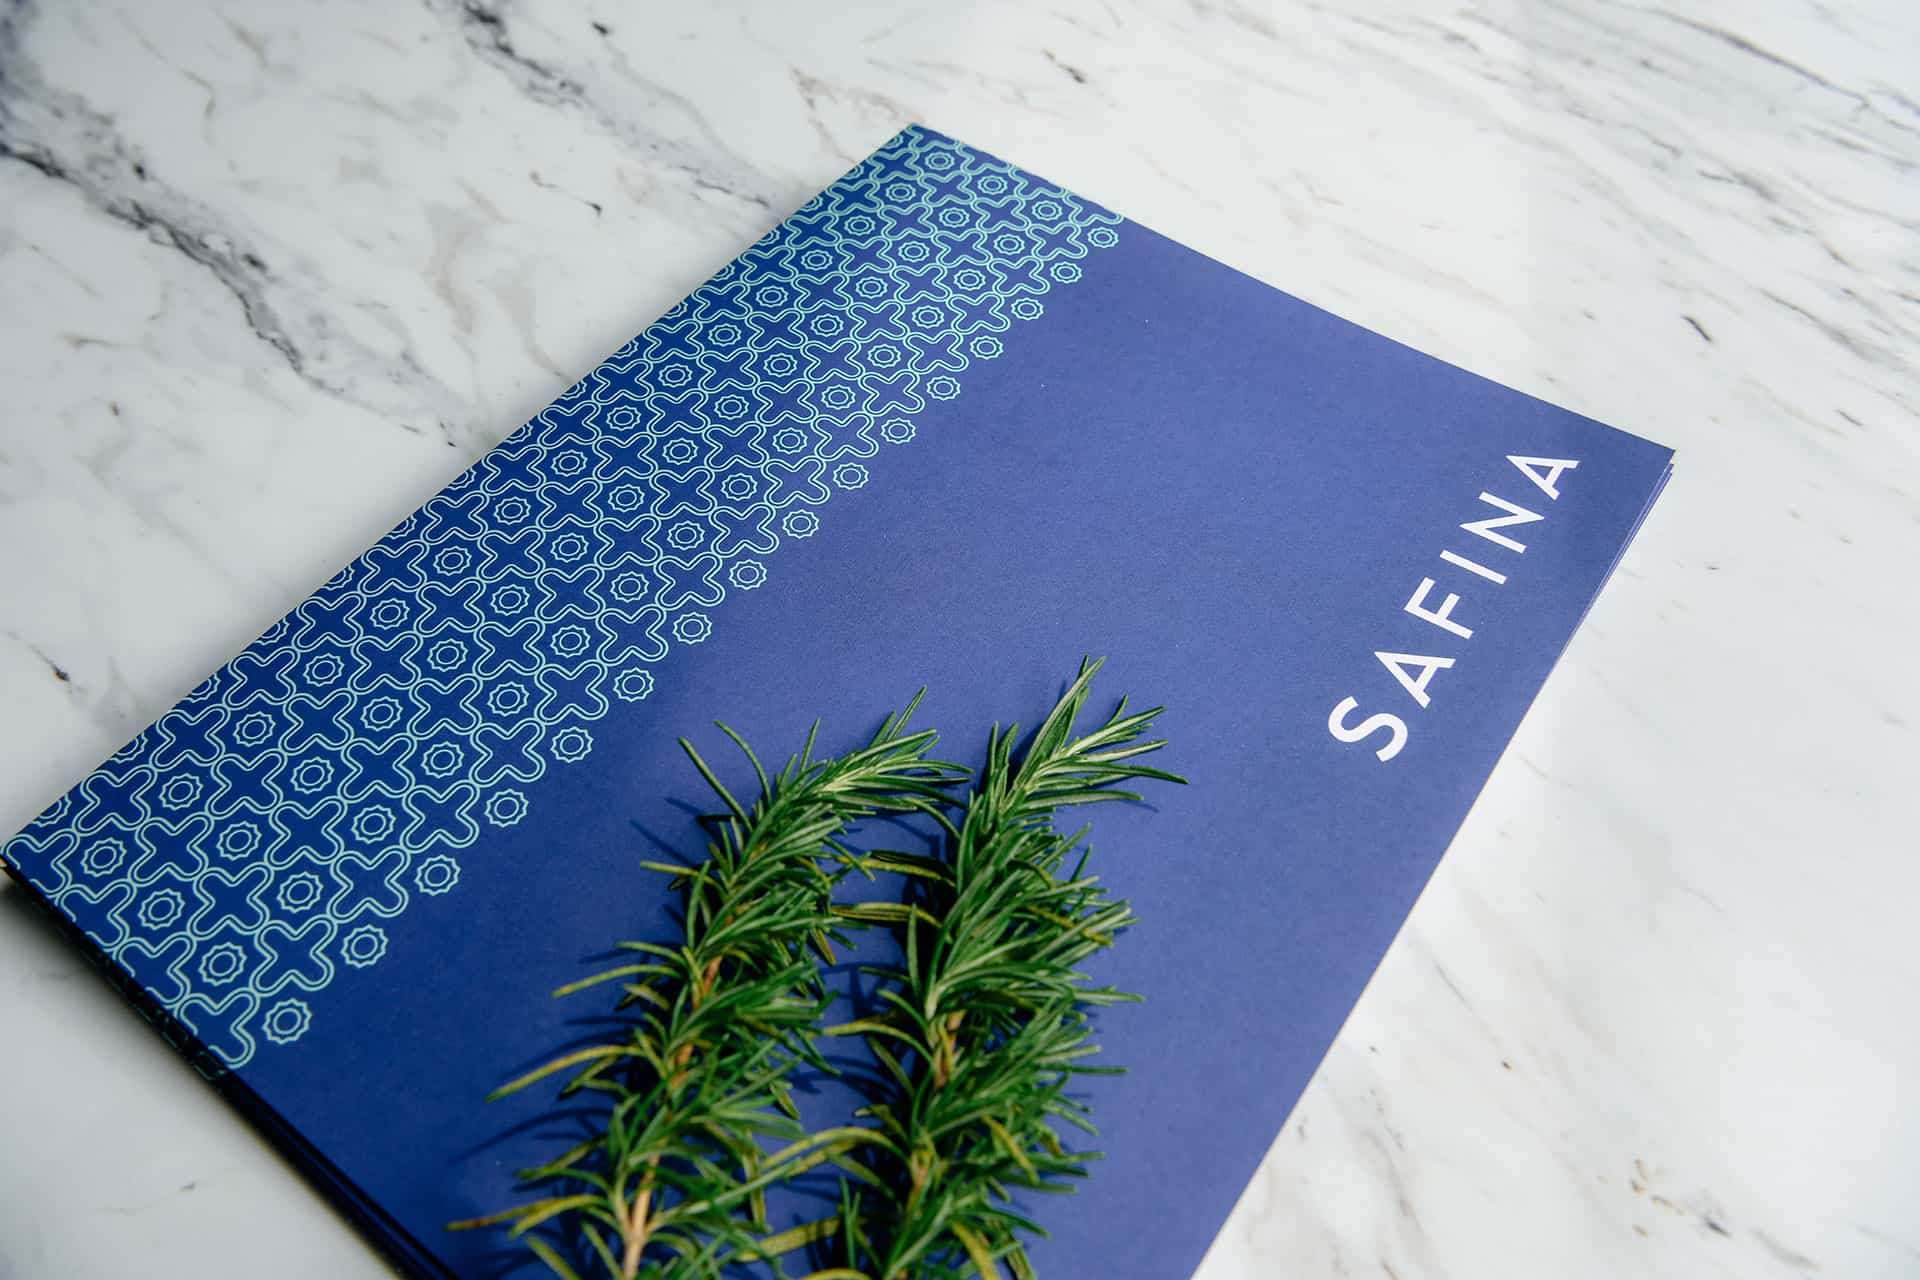 Safina's multiple brand touch points took inspiration from the Mediterranean in color and craft. Faux leather featured the brand's colors in all their vibrancy creating a calming and uplifting experience. The full suite of menus equipped the brand with many options for their different day parts and dining experience needs. Additional character-driven pieces were designed to add special notes to the experience. Coasters through matchboxes served as final touches to a complete brand identity menu design